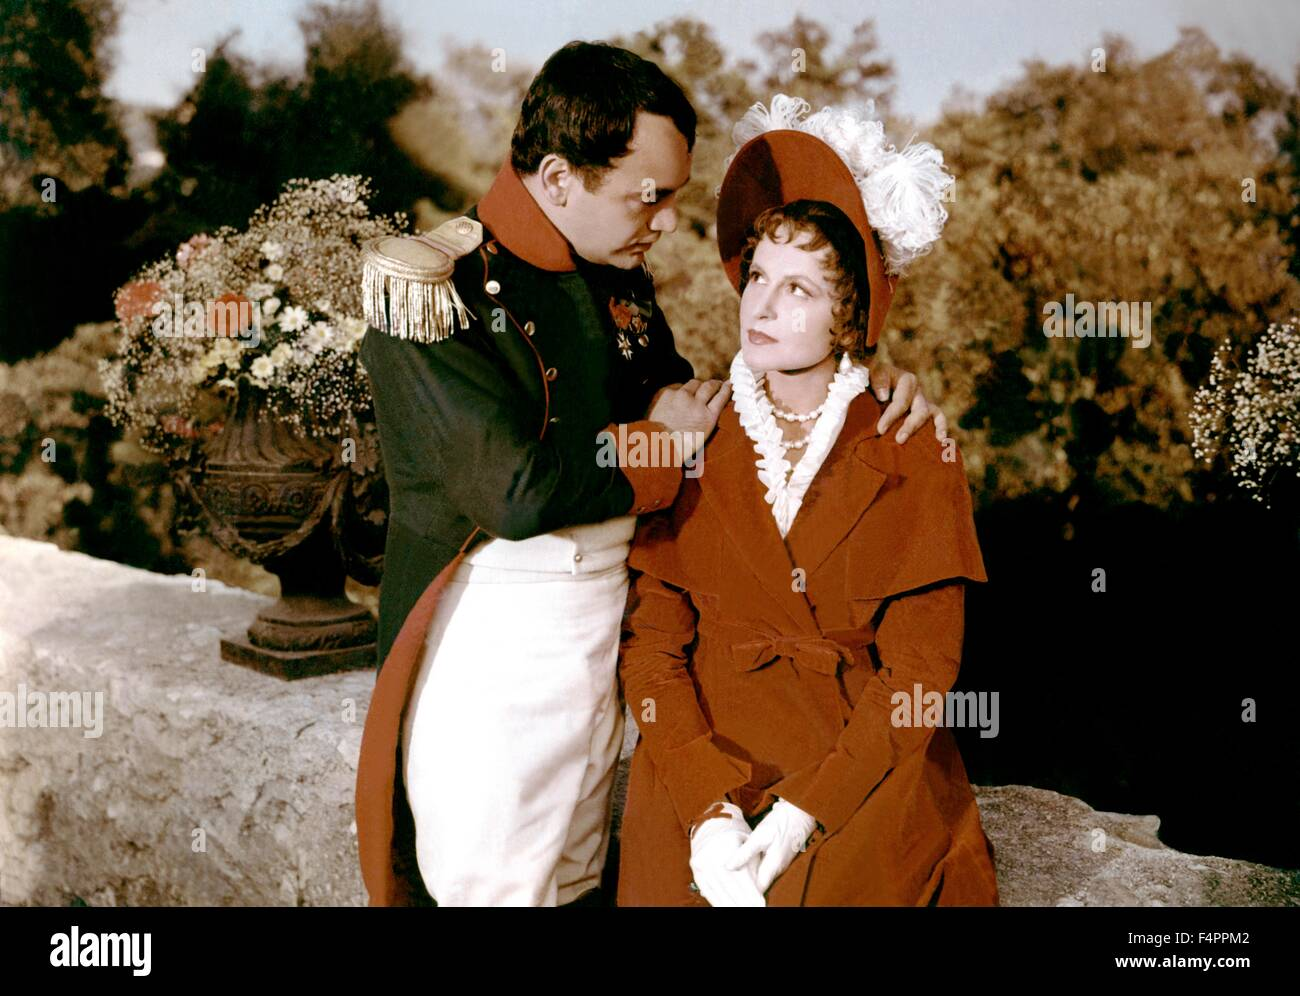 Raymond Pellegrin and Lana Marconi / Napoleon / 1954 directed by Sacha Guitry - Stock Image